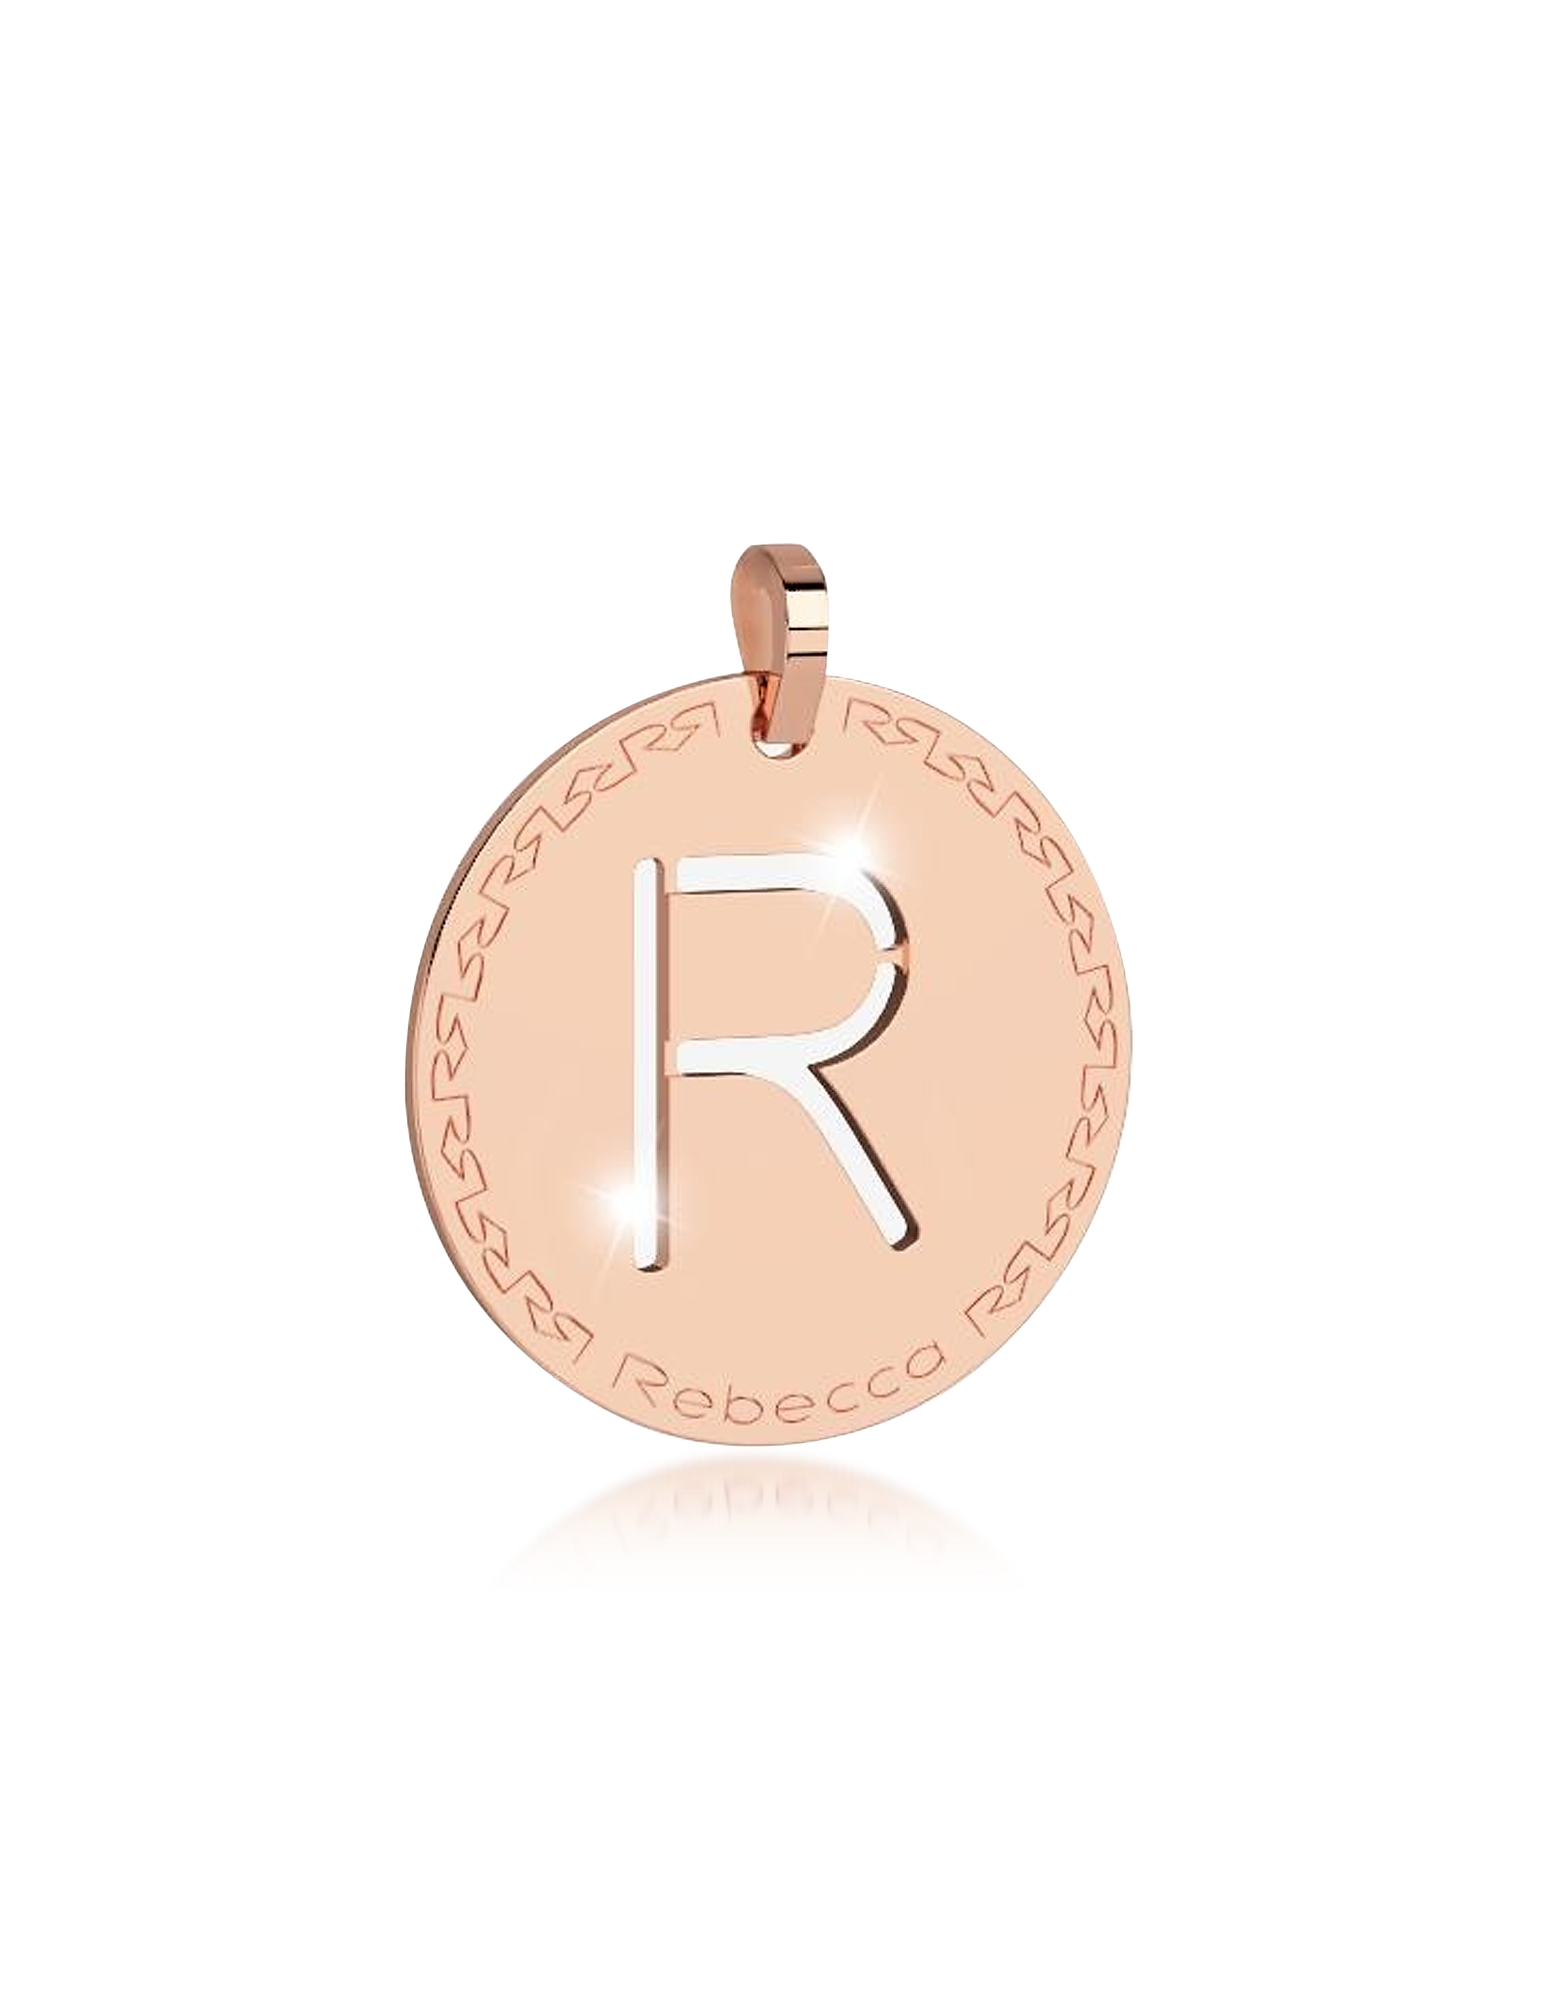 Rebecca Designer Necklaces, Rose Gold-plated Bronze R Charm W/Rhodium-plated Necklace